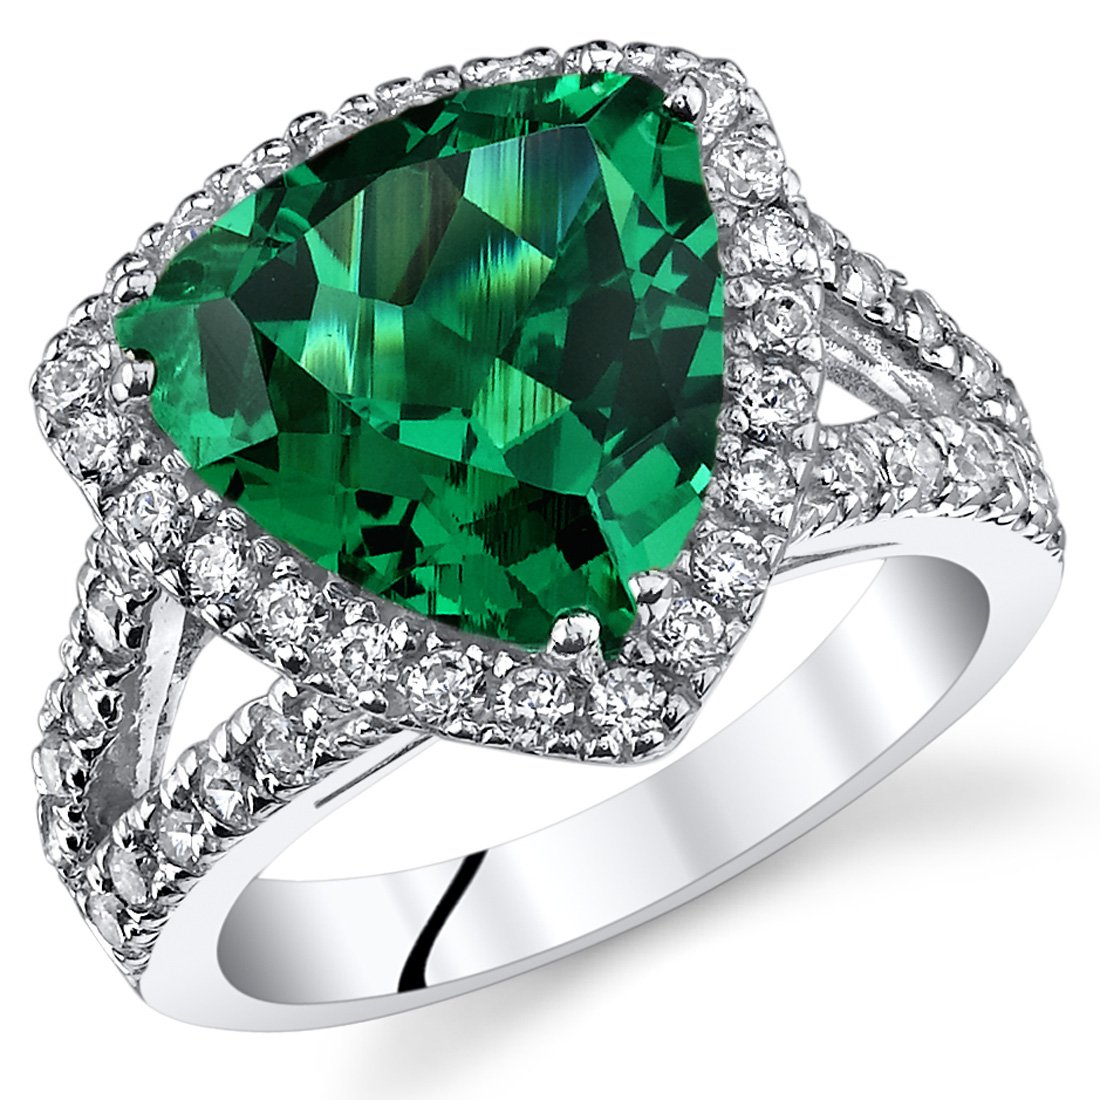 5.00 Carats Trillion Cut Simulated Emerald Cocktail Ring Sterling Silver Sizes 5 to 9 Peora